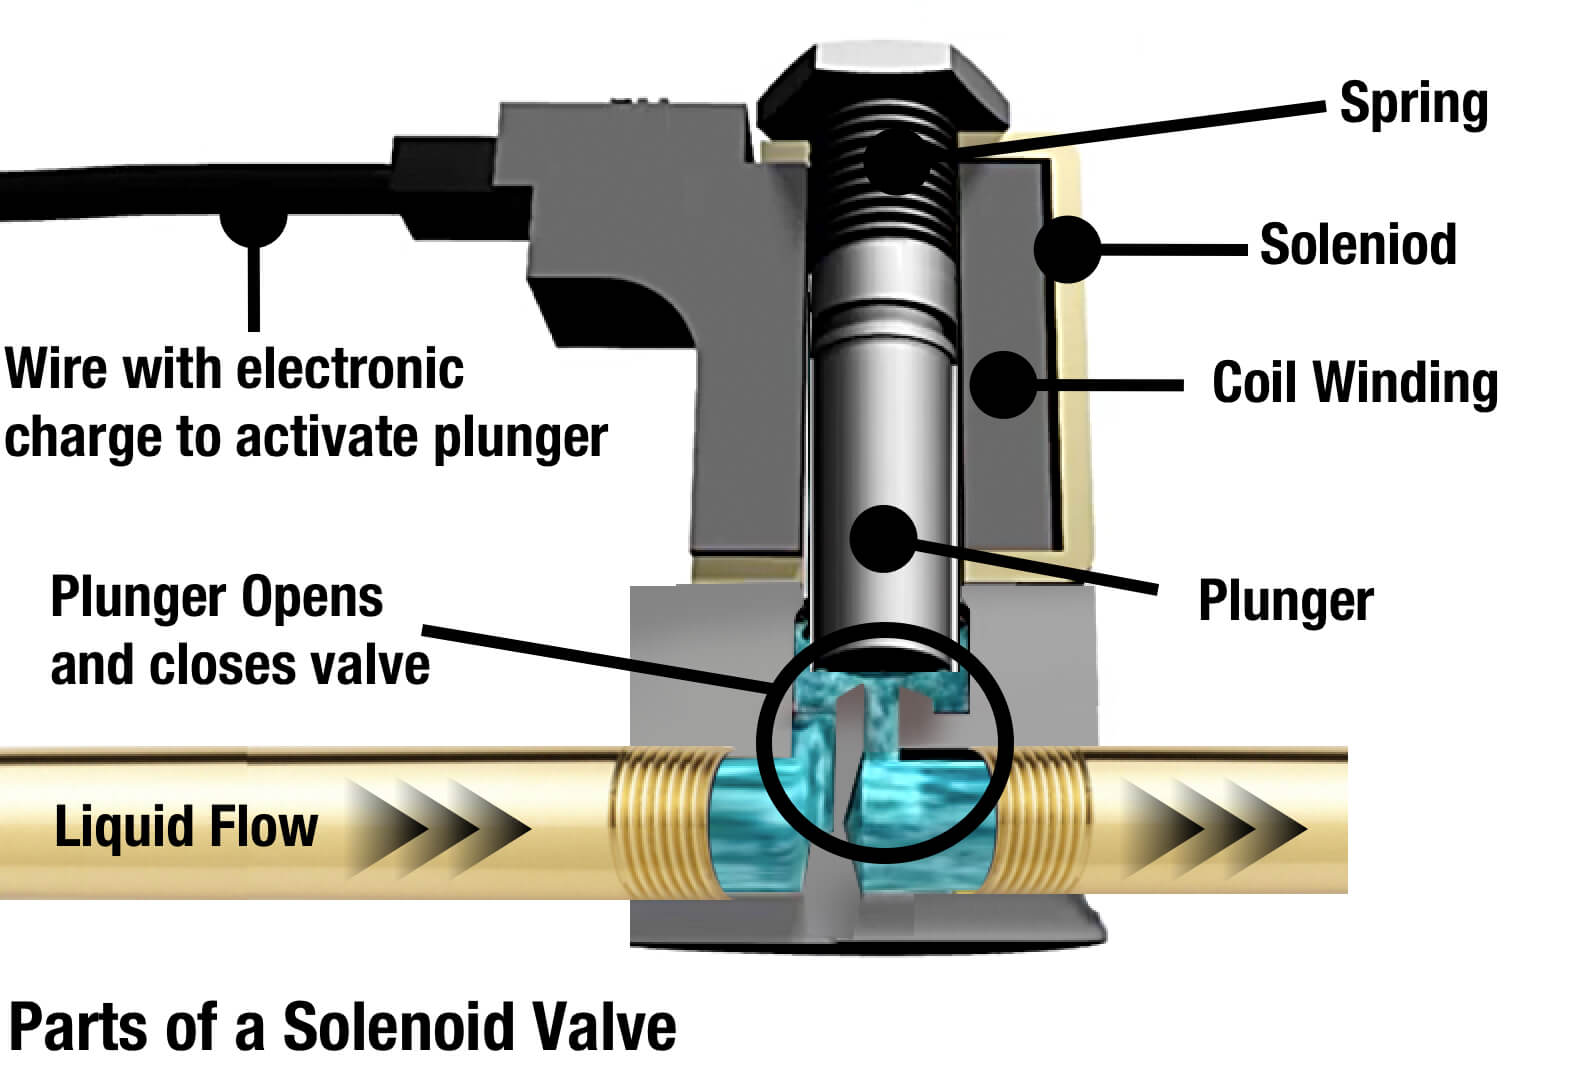 Parts of a Solenoid Valve